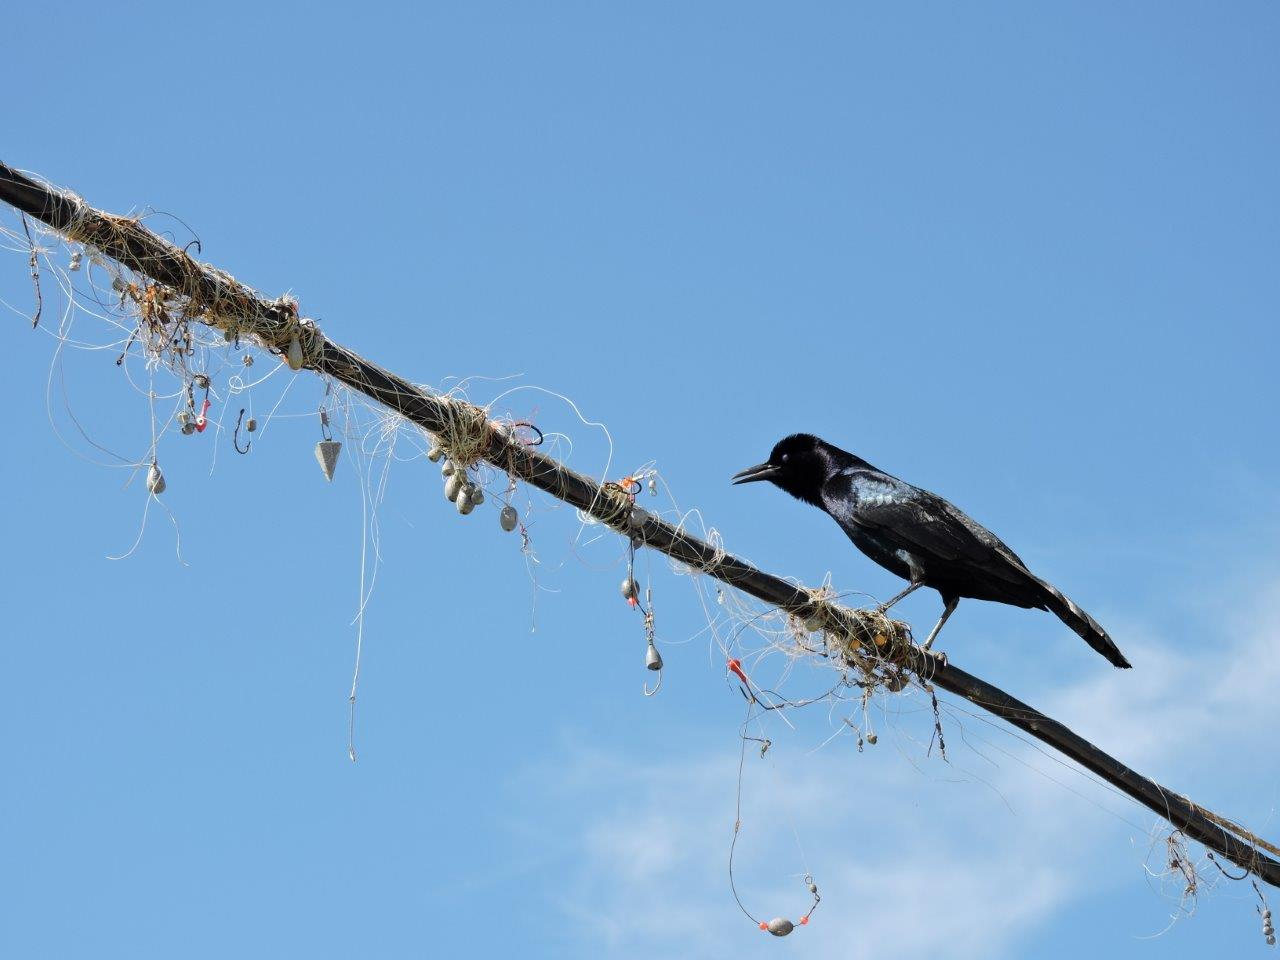 Fishing Line Entangled On Next To A Grackle